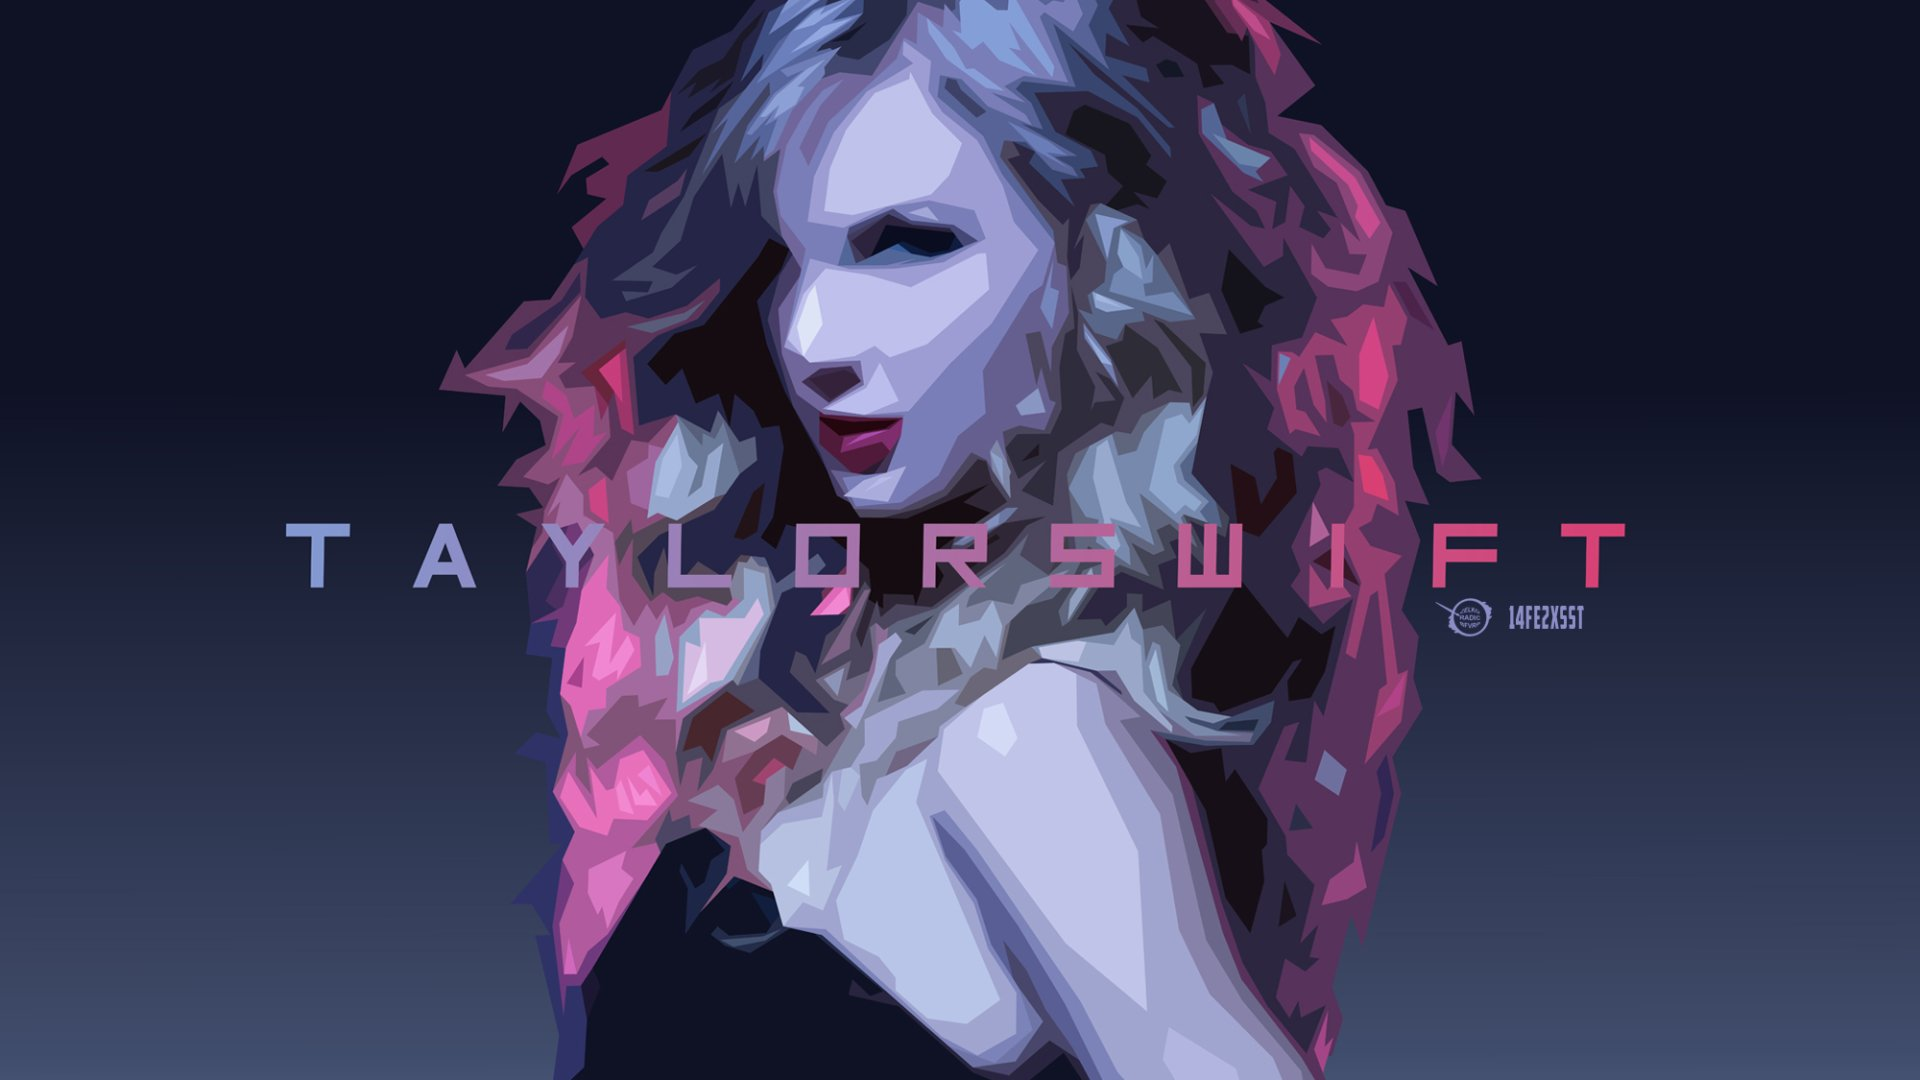 Music - Taylor Swift  Celebrity Music Portrait Artwork Wallpaper